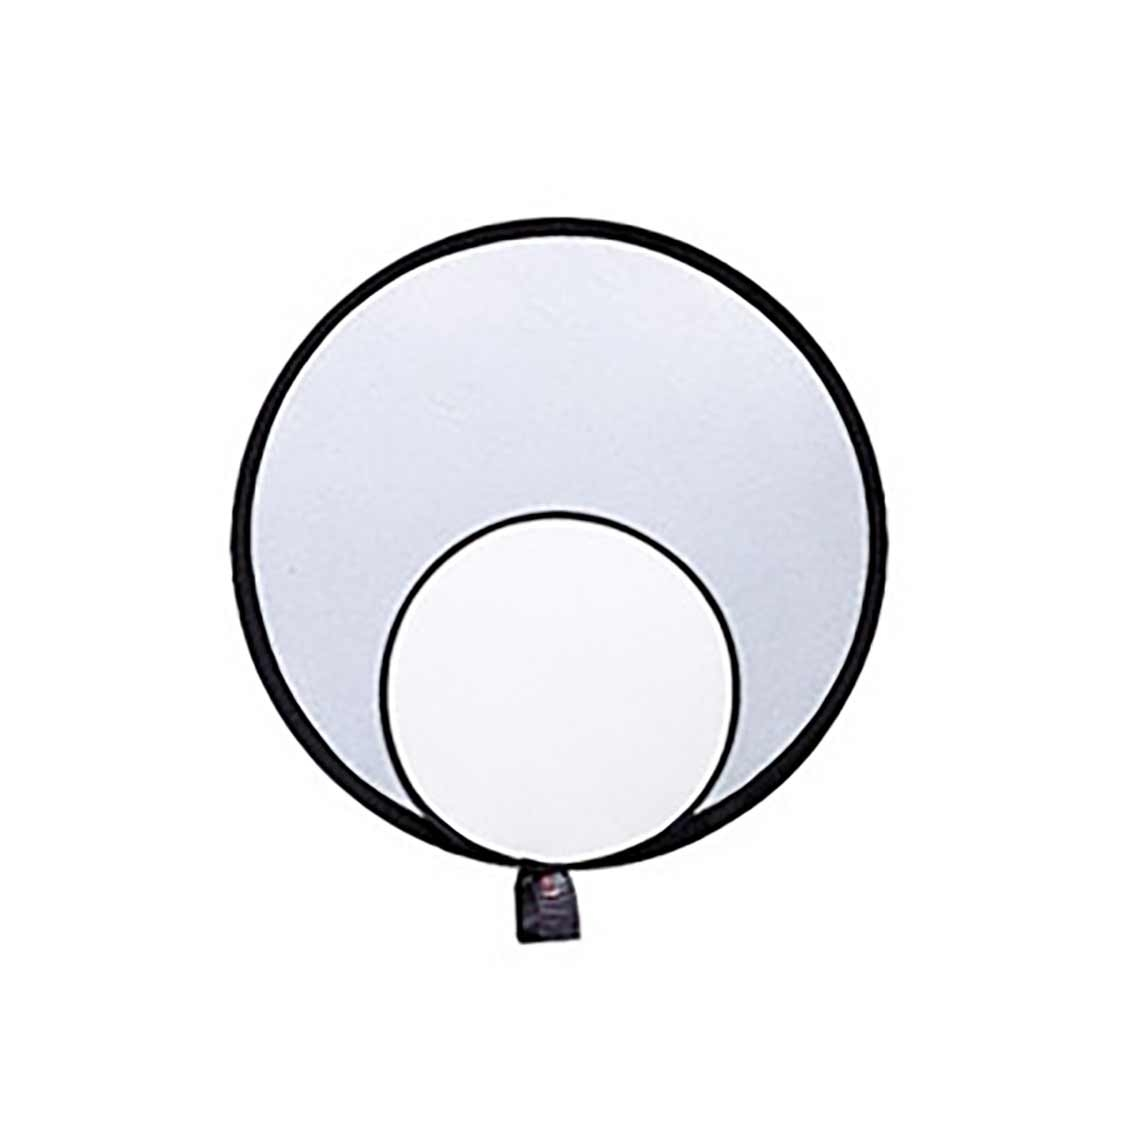 Promaster Reflectadisc 12-inch Silver/White